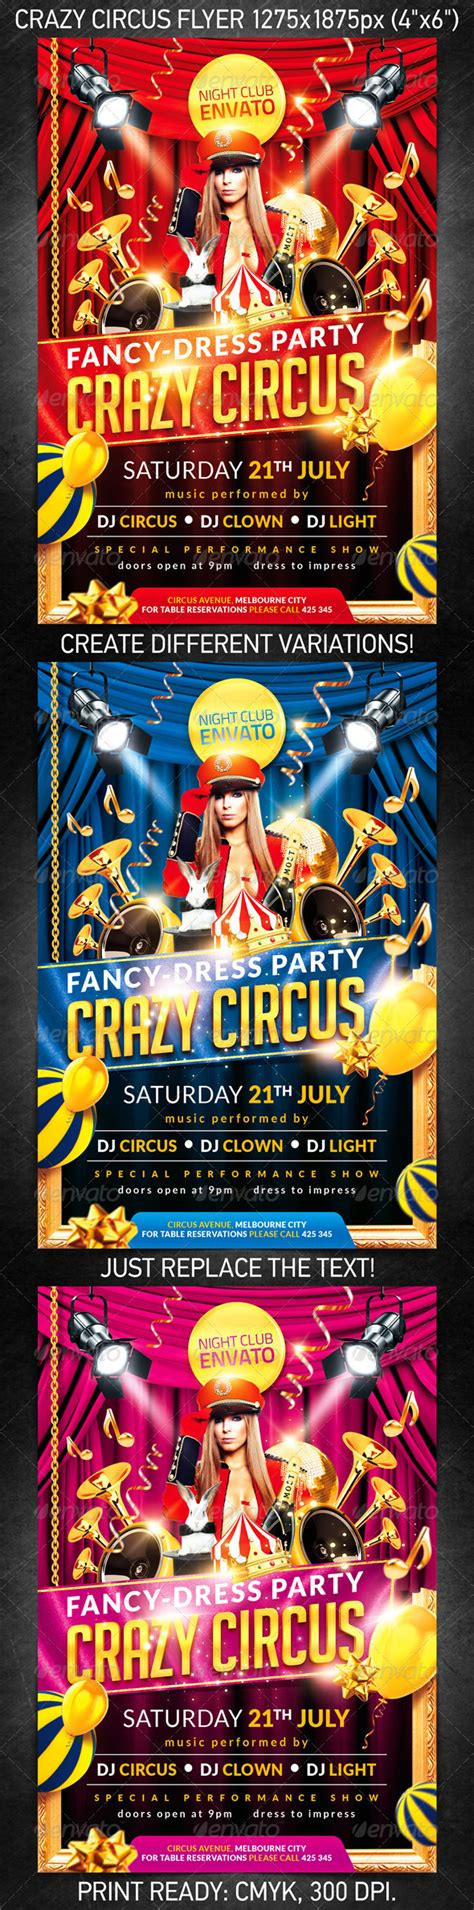 carnival party flyer crazy circus party flyer psd template on pantone canvas